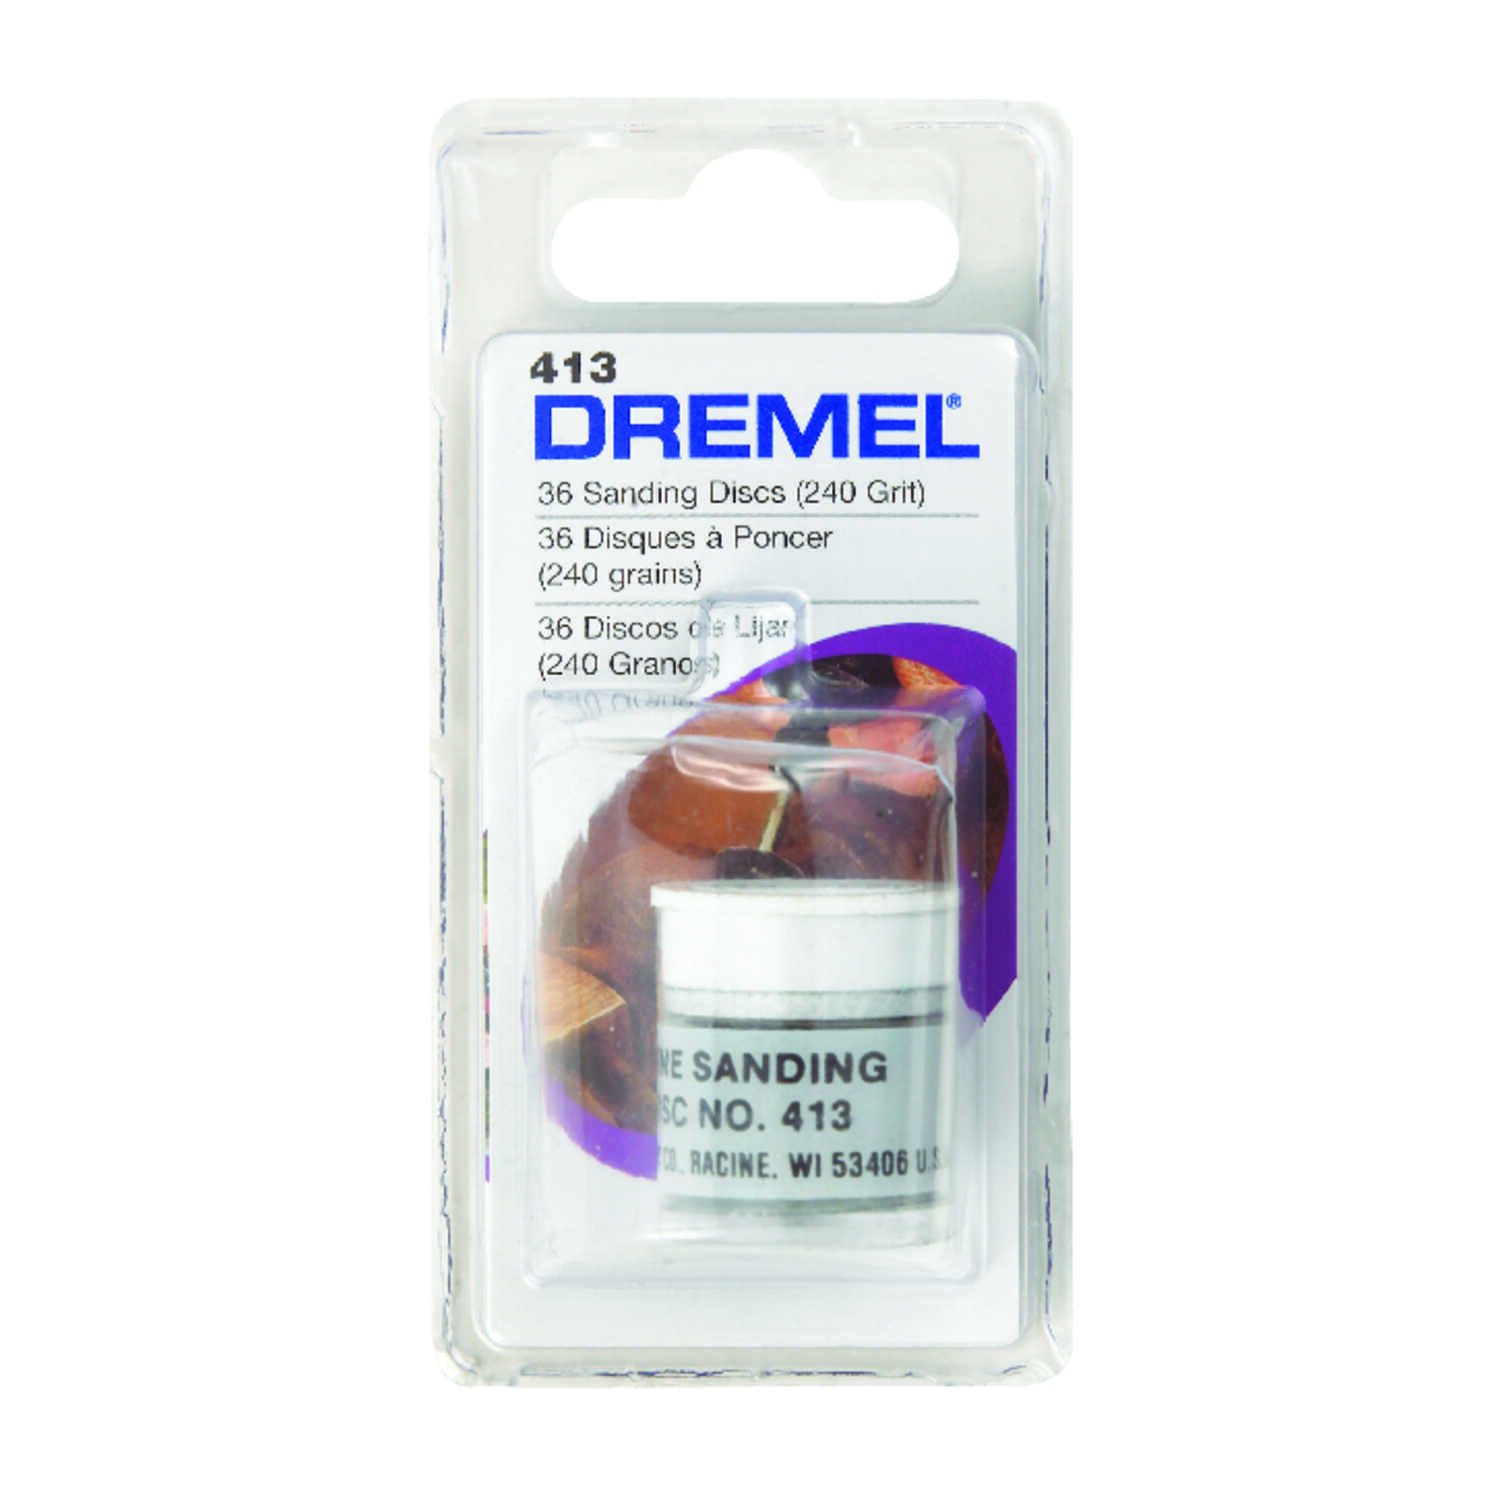 Dremel  Aluminum Oxide  Center Mount  Sanding Disc  36 pk 240 Grit Fine  1 in.